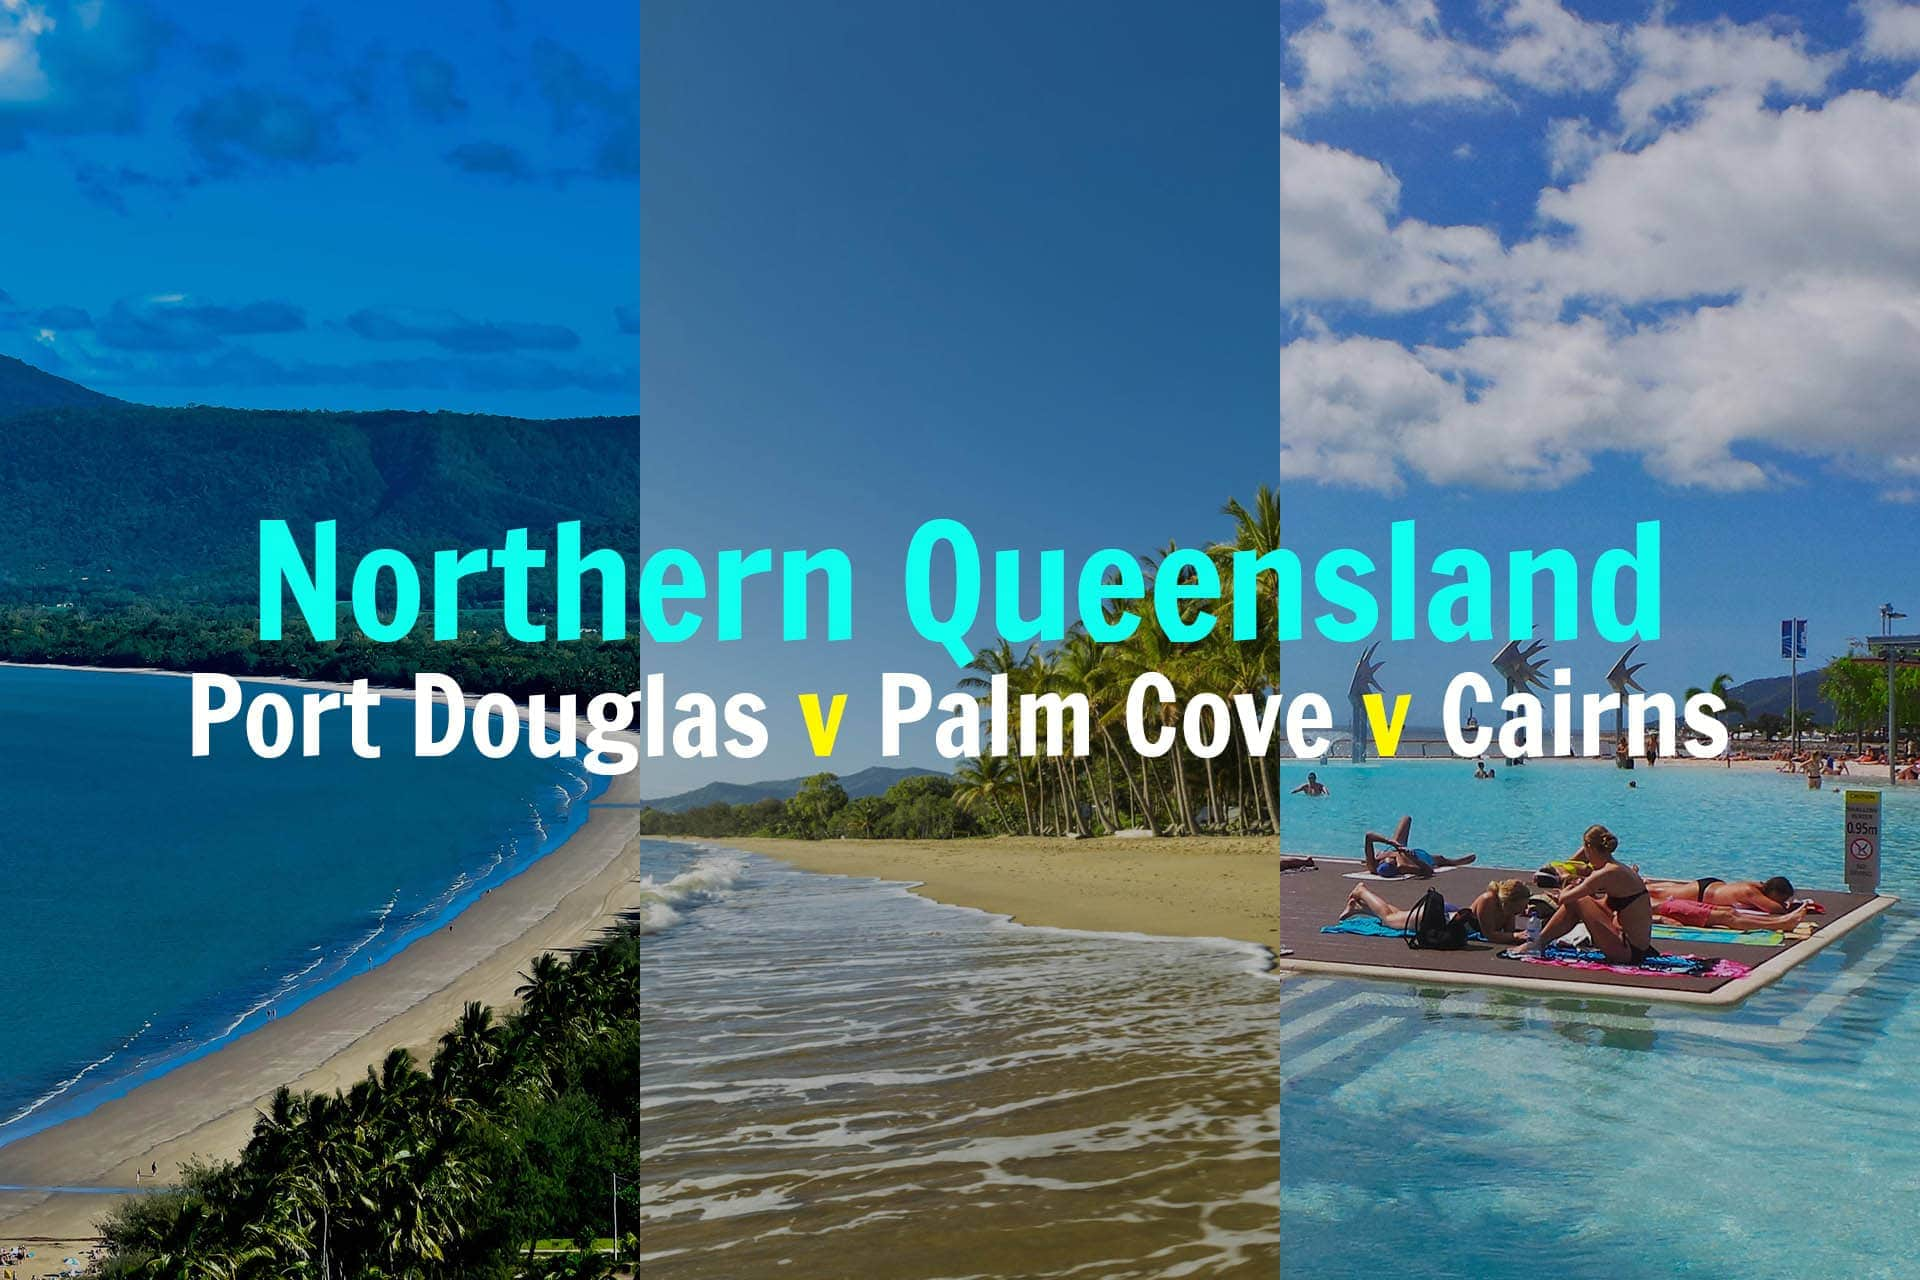 North Queensland Holiday Packages Port Douglas Vs Palm Cove Vs Cairns Londoner In Sydney